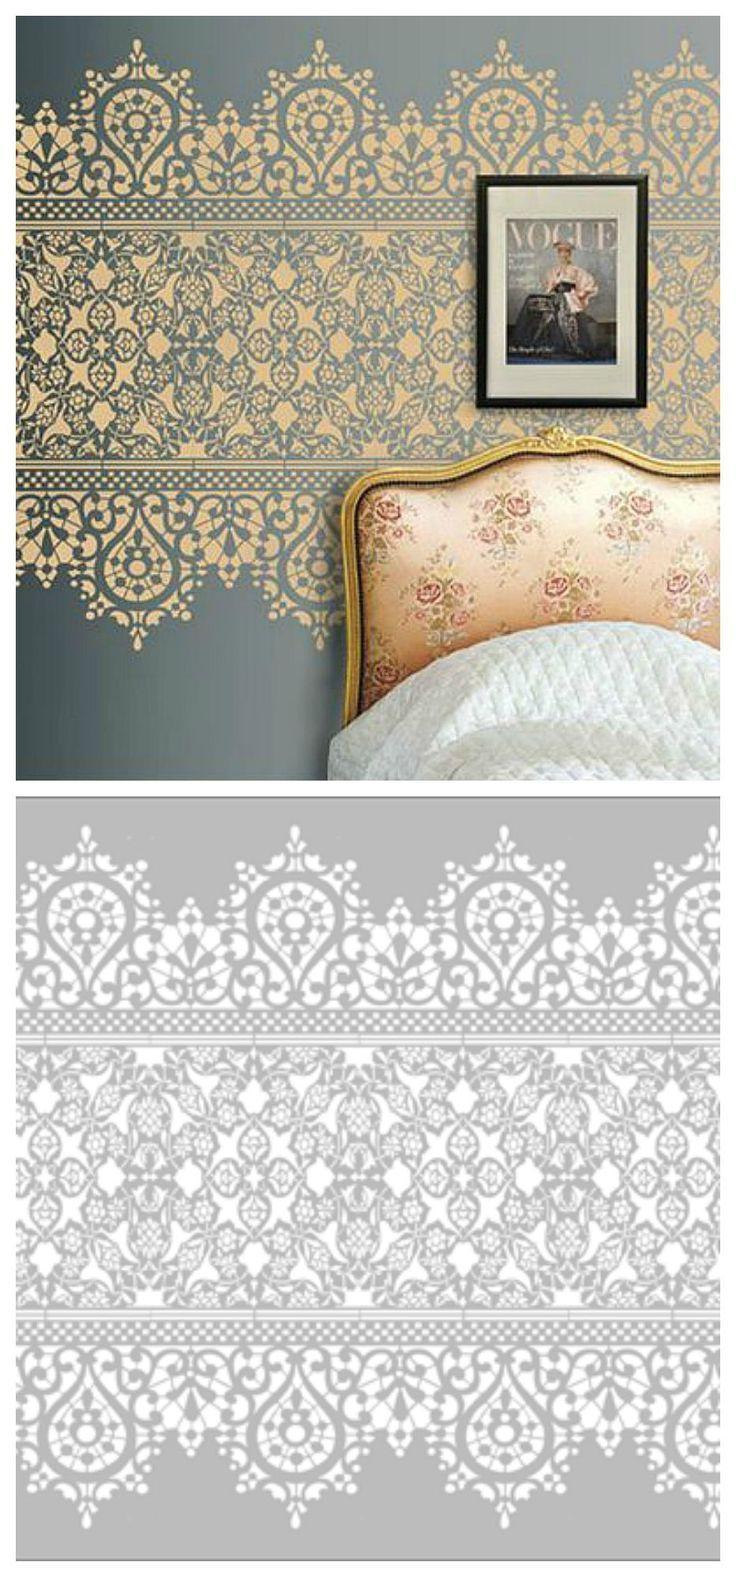 Bedroom Stencil Ideas. Wall stencil  lace wall Creates a delicate pattern